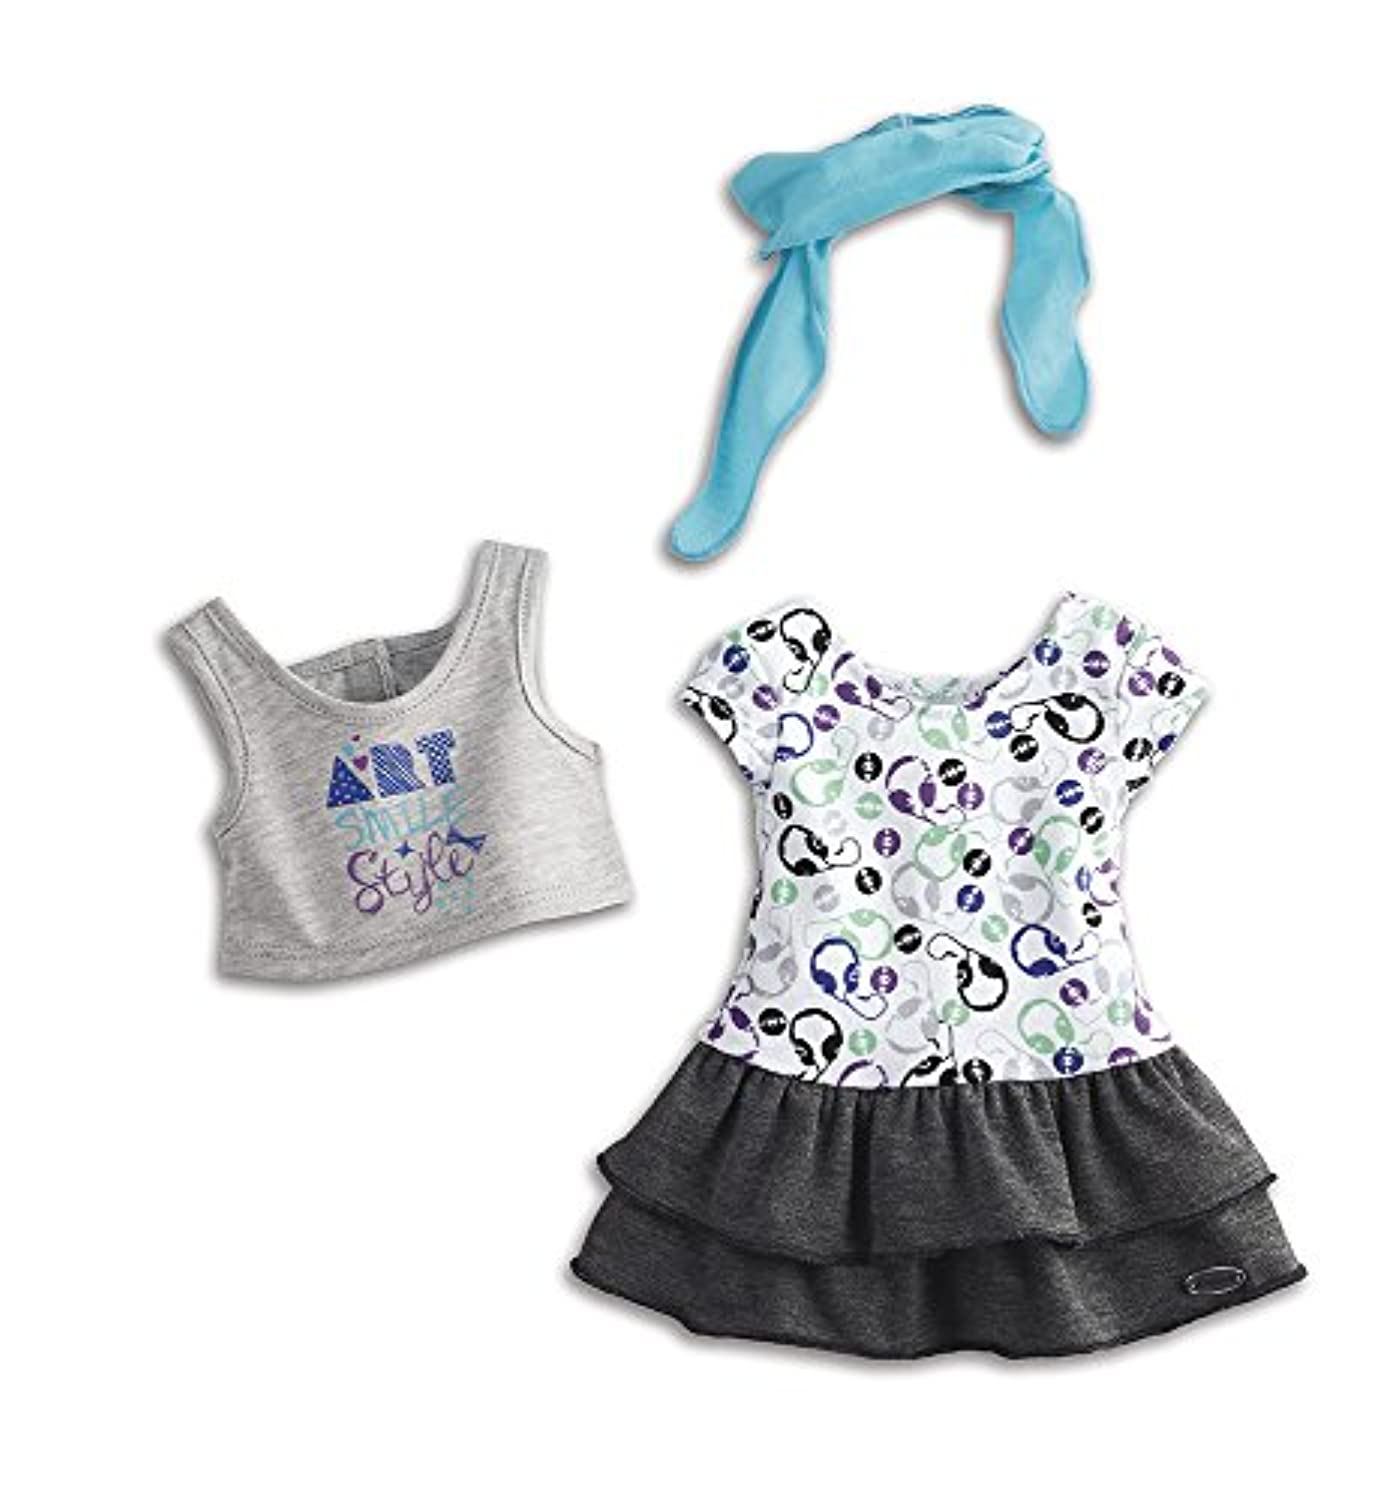 American Girl Z's Sightseeing Outfit for 18-inch Dolls